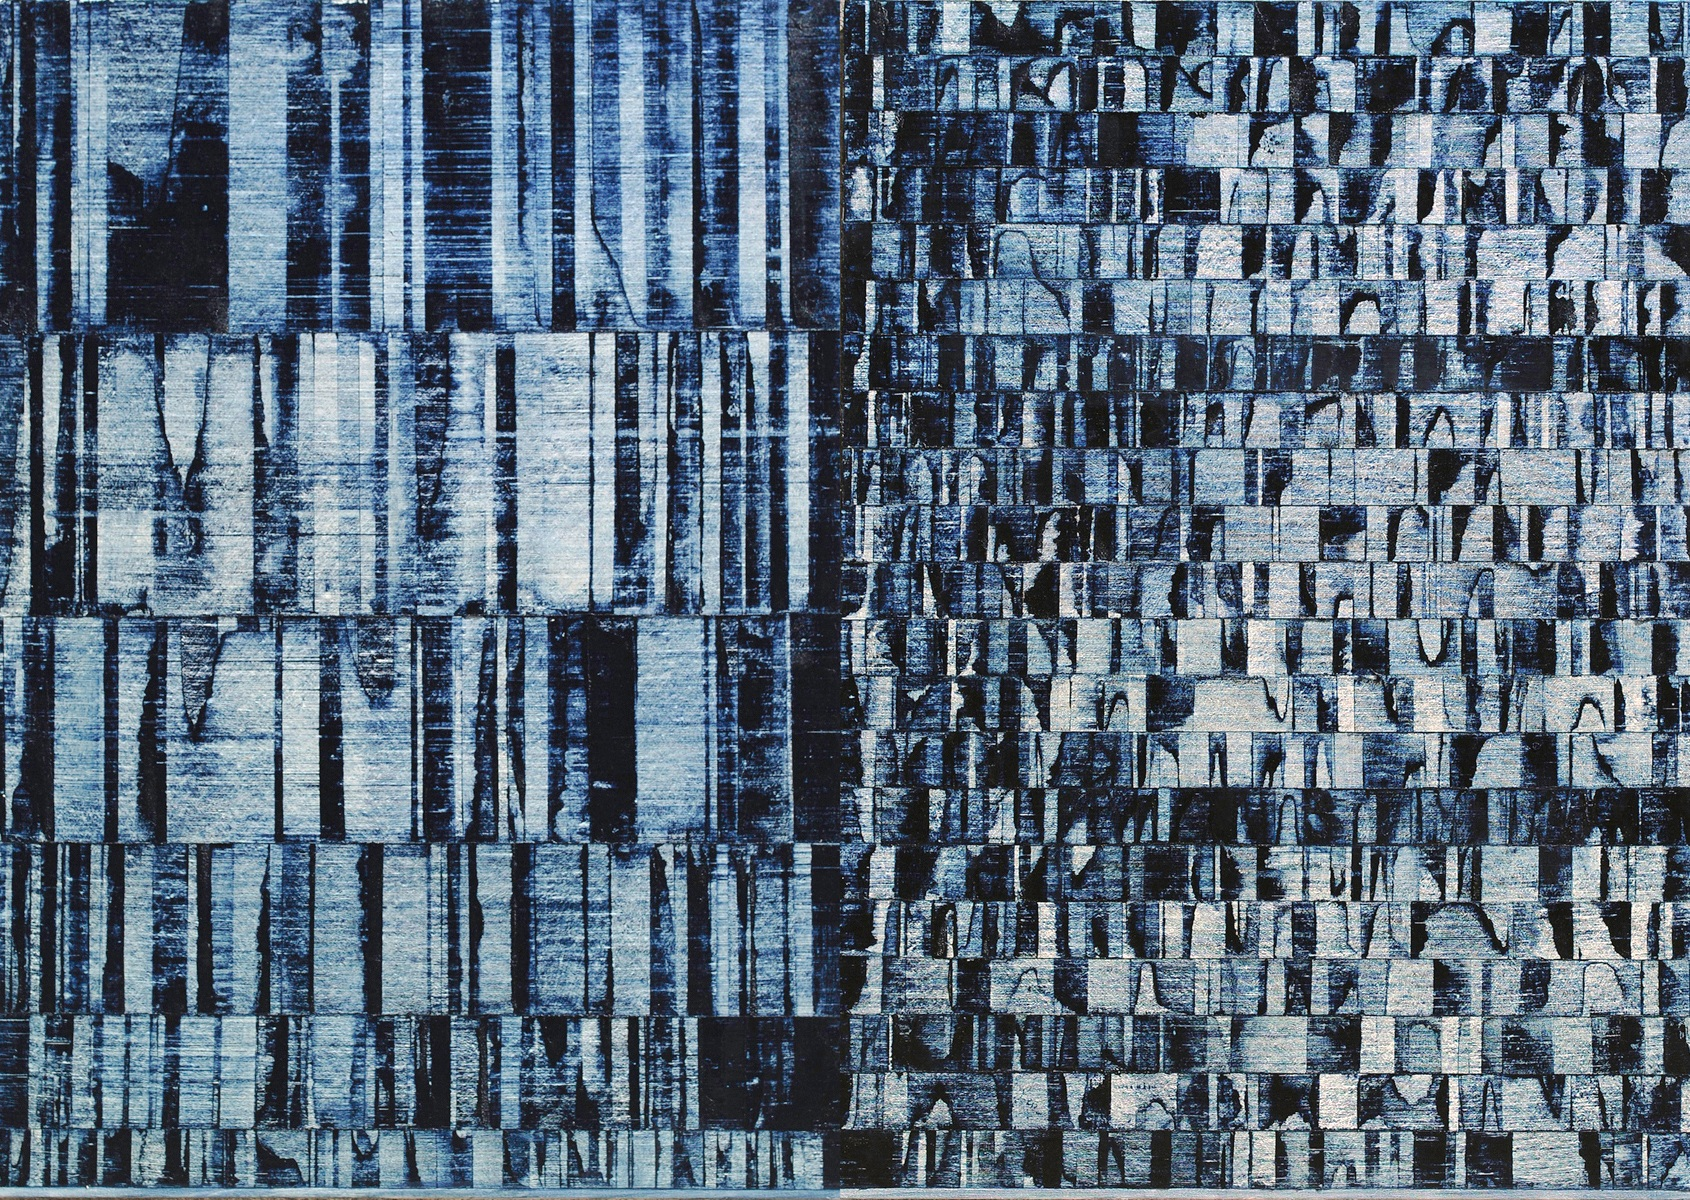 ISIS 26: Grid Skid, 2013, Oil, acrylic on linen over panels, 42.5 x 60 inches.